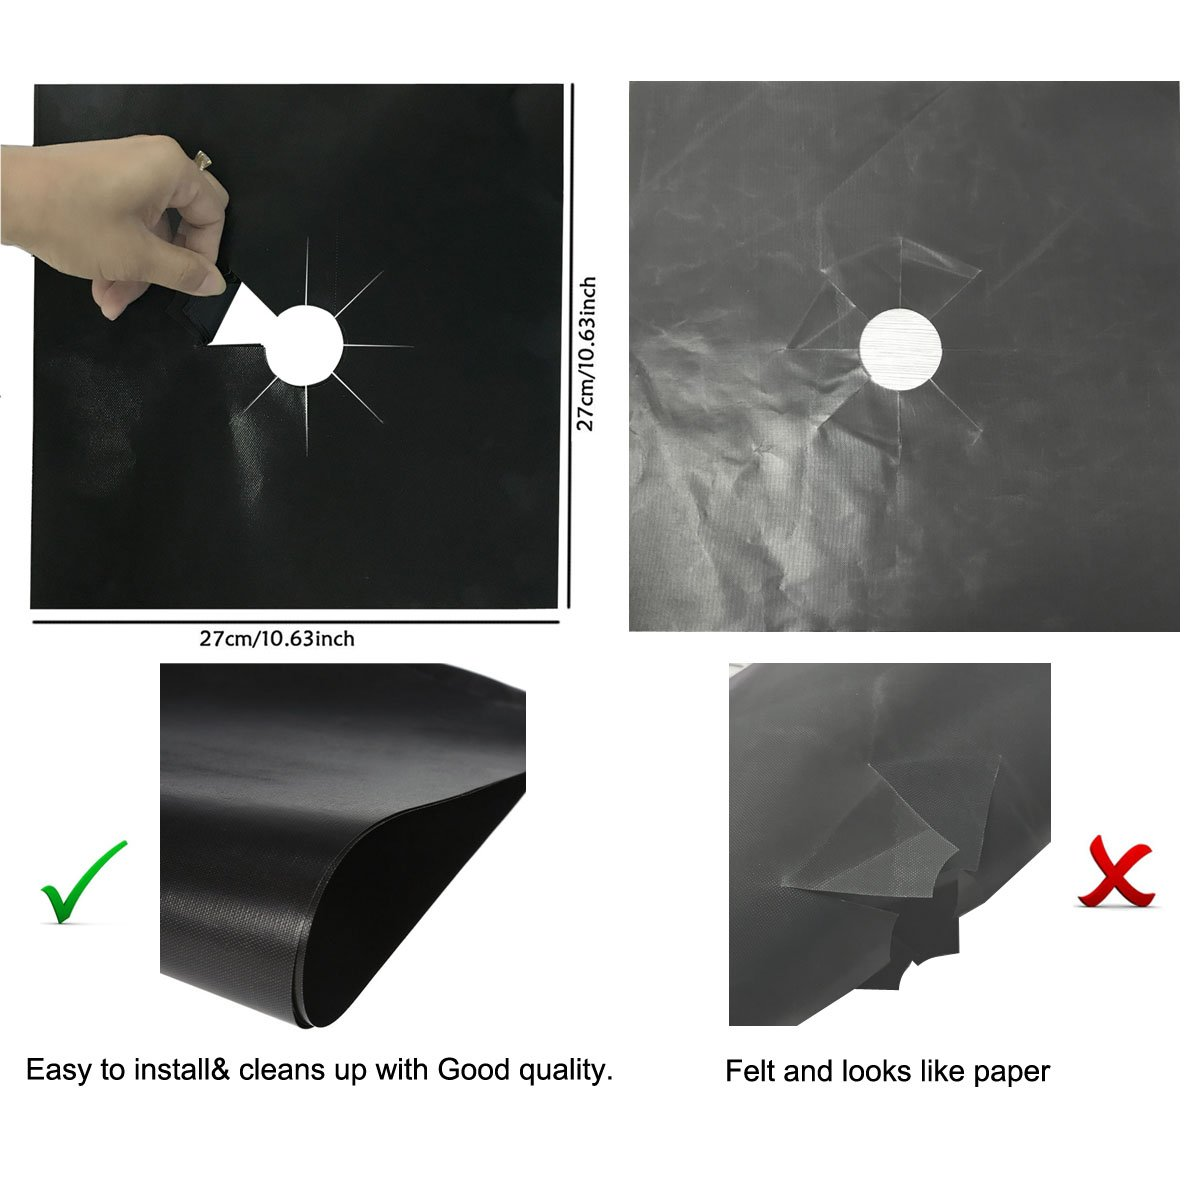 """Reusable Non-Stick NEWROAD Gas range protectors 10.6/"""" x 10.6/"""" Stove Burner Covers 0.2 mm Double Thickness -4pack Fast Clean Liners for Kitchen// Cooking"""